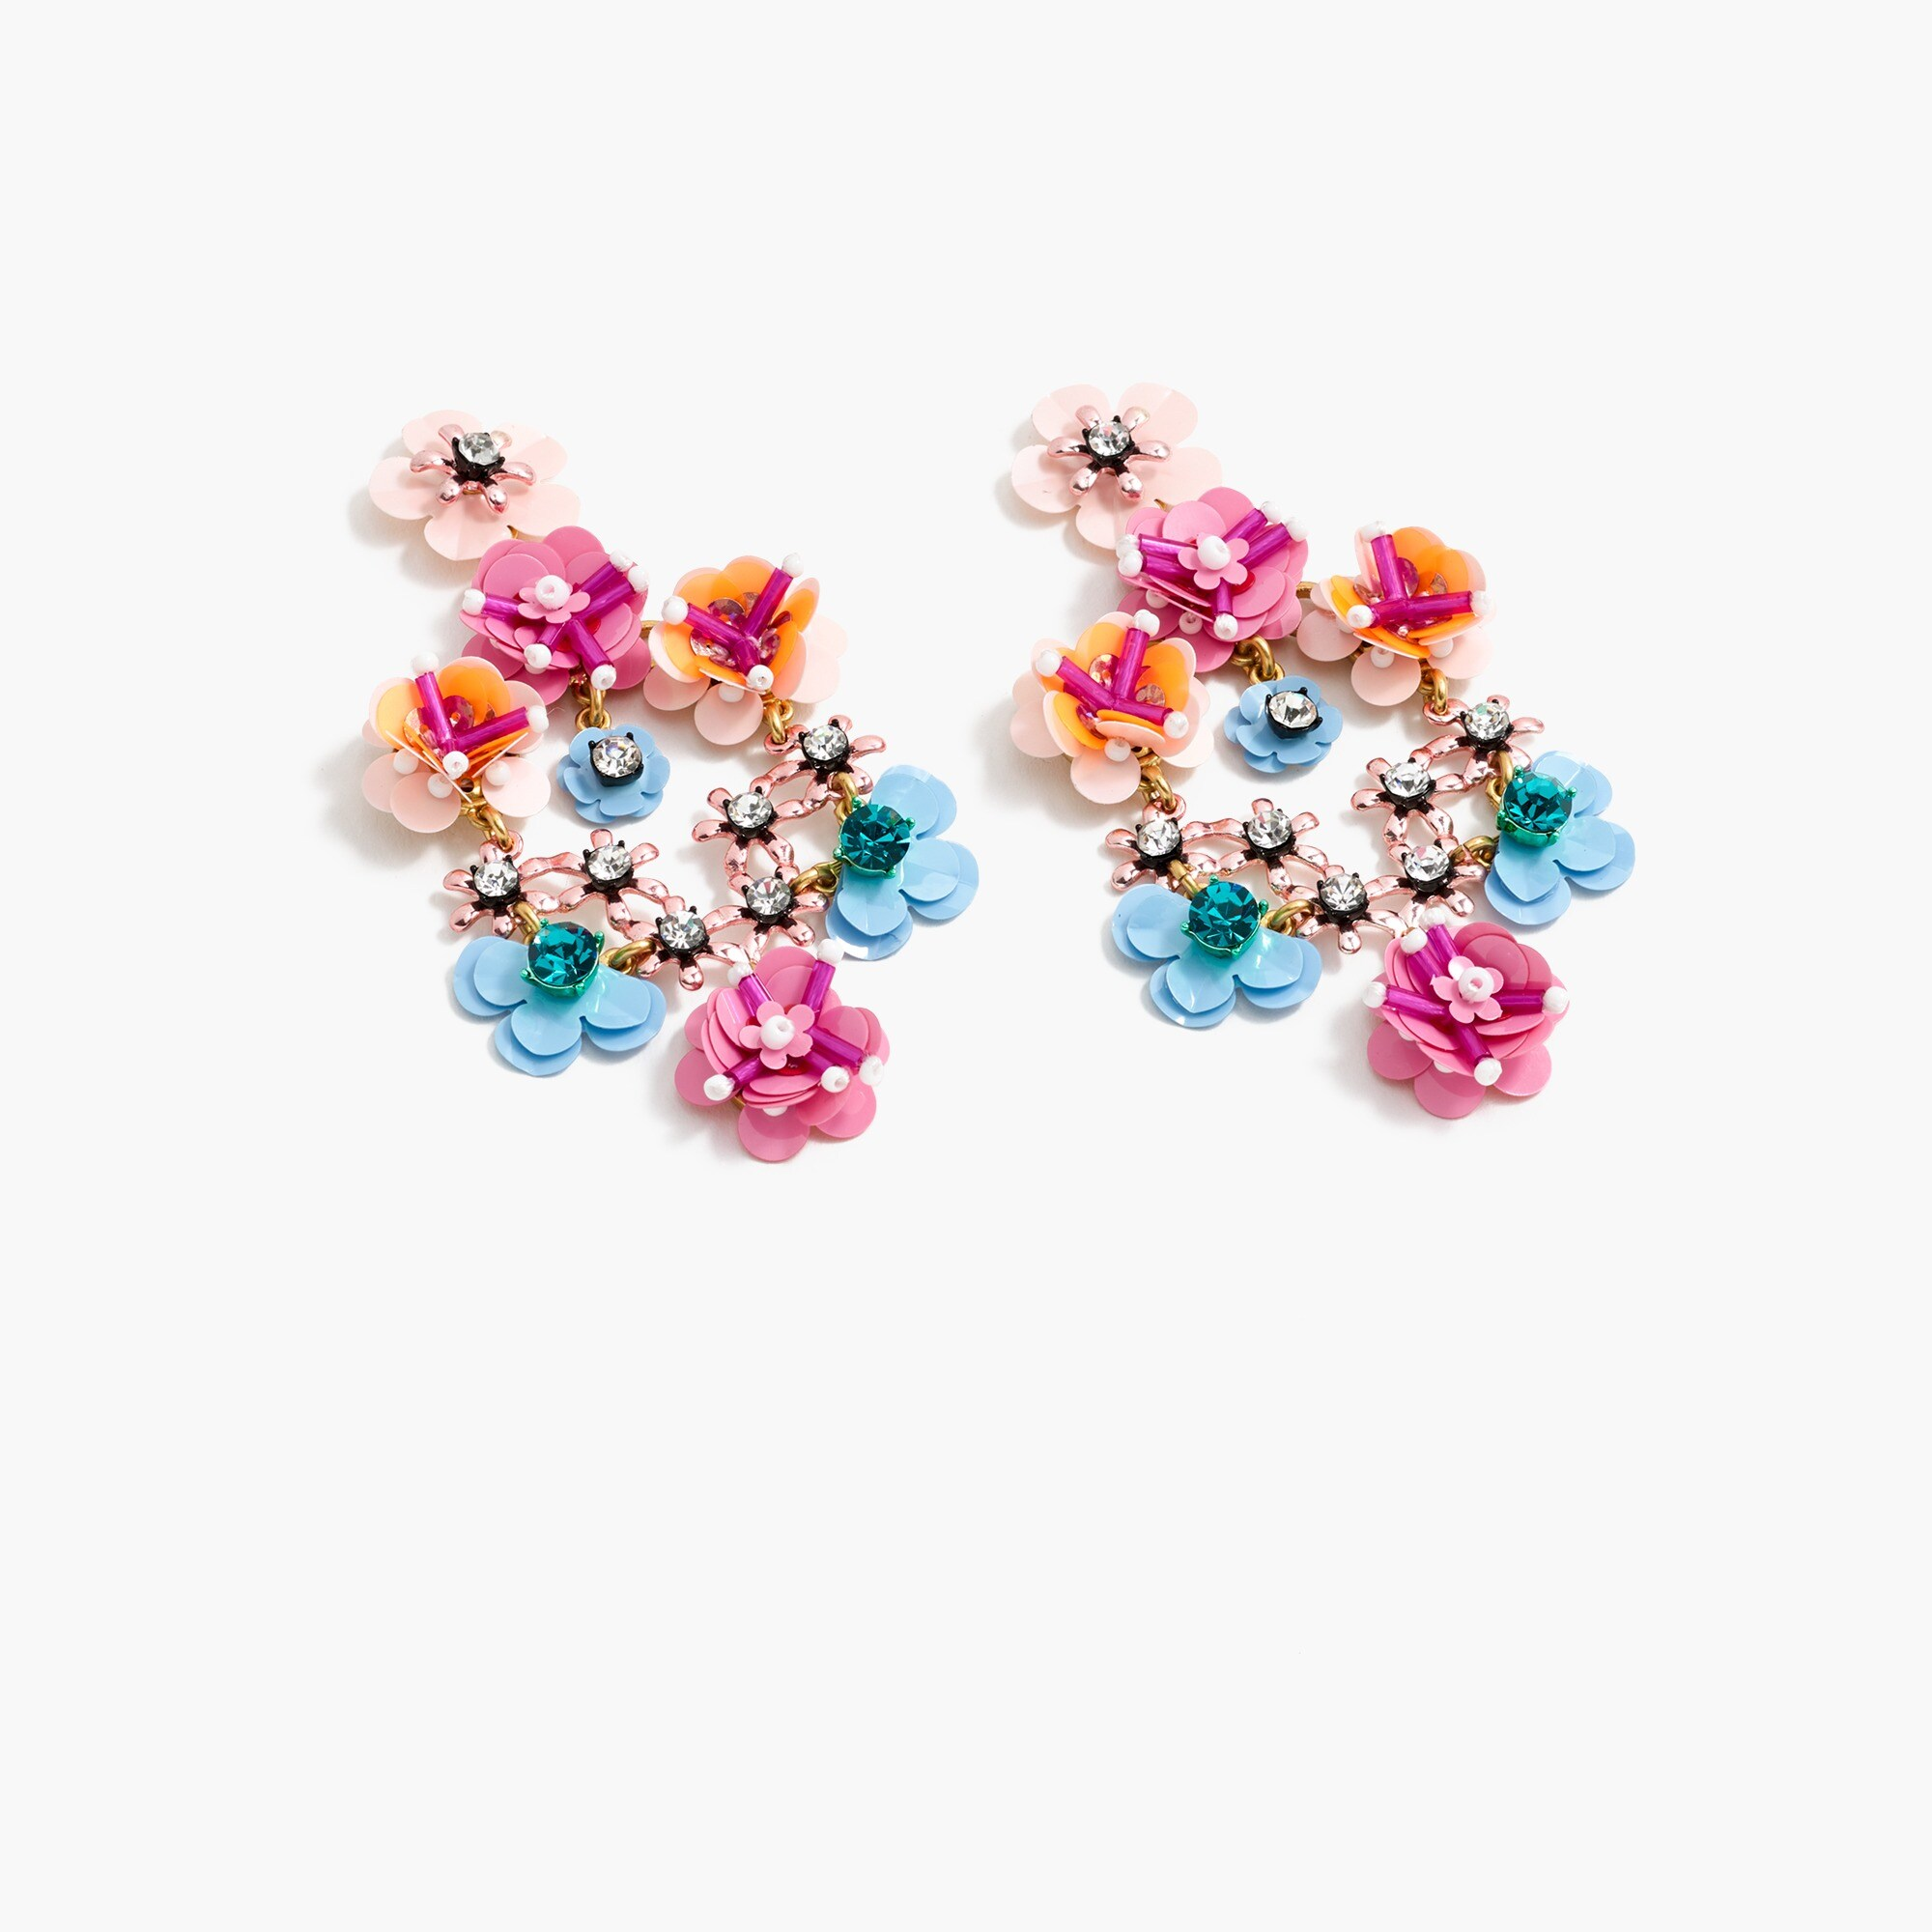 Stone and blossom earrings women jewelry c